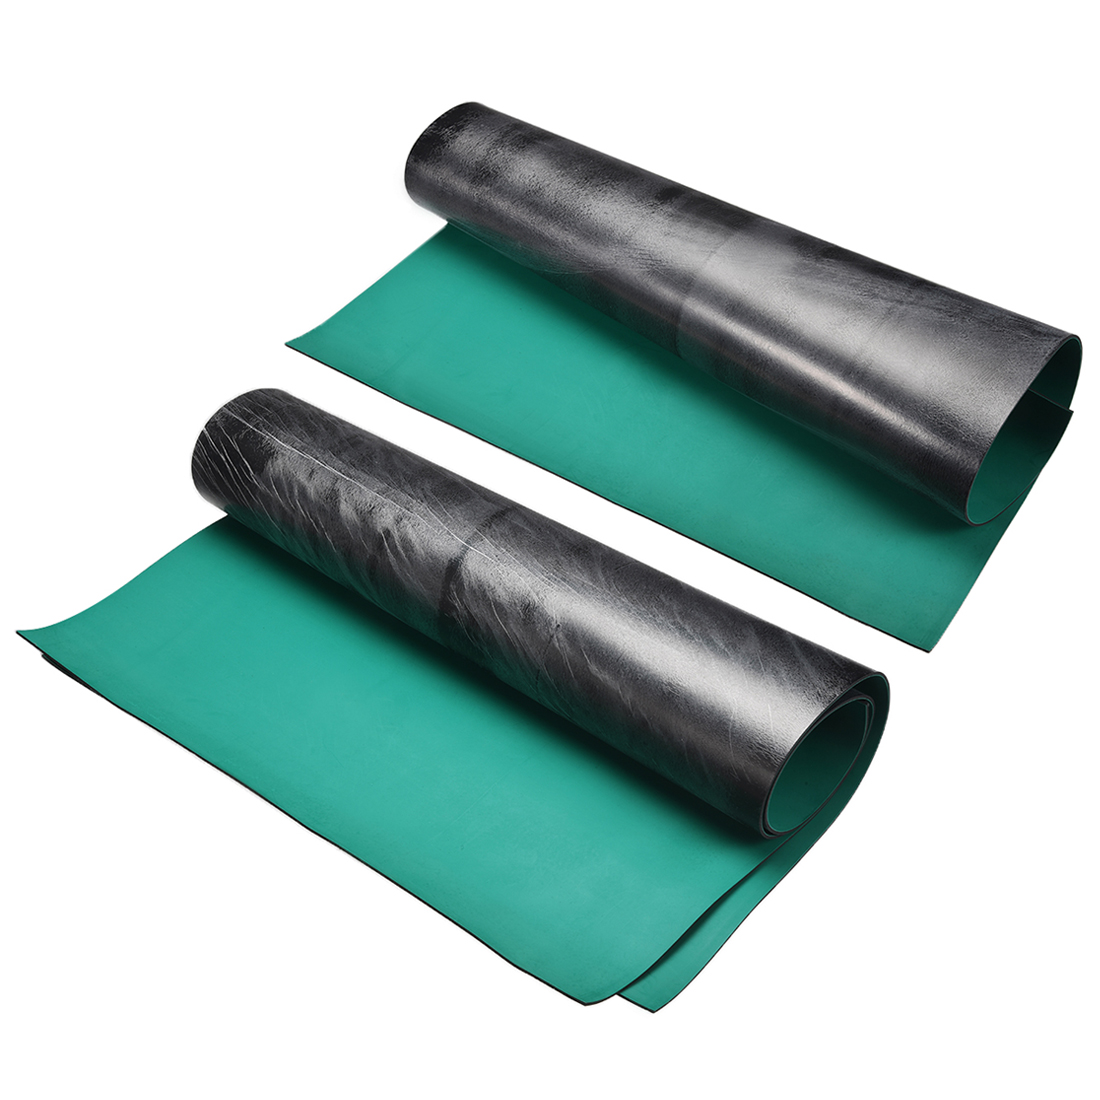 Uxcell Anti Static ESD Mat High Temperature Rubber Table Mat Green Black For Padding Desktops And Assembly Work Surfaces